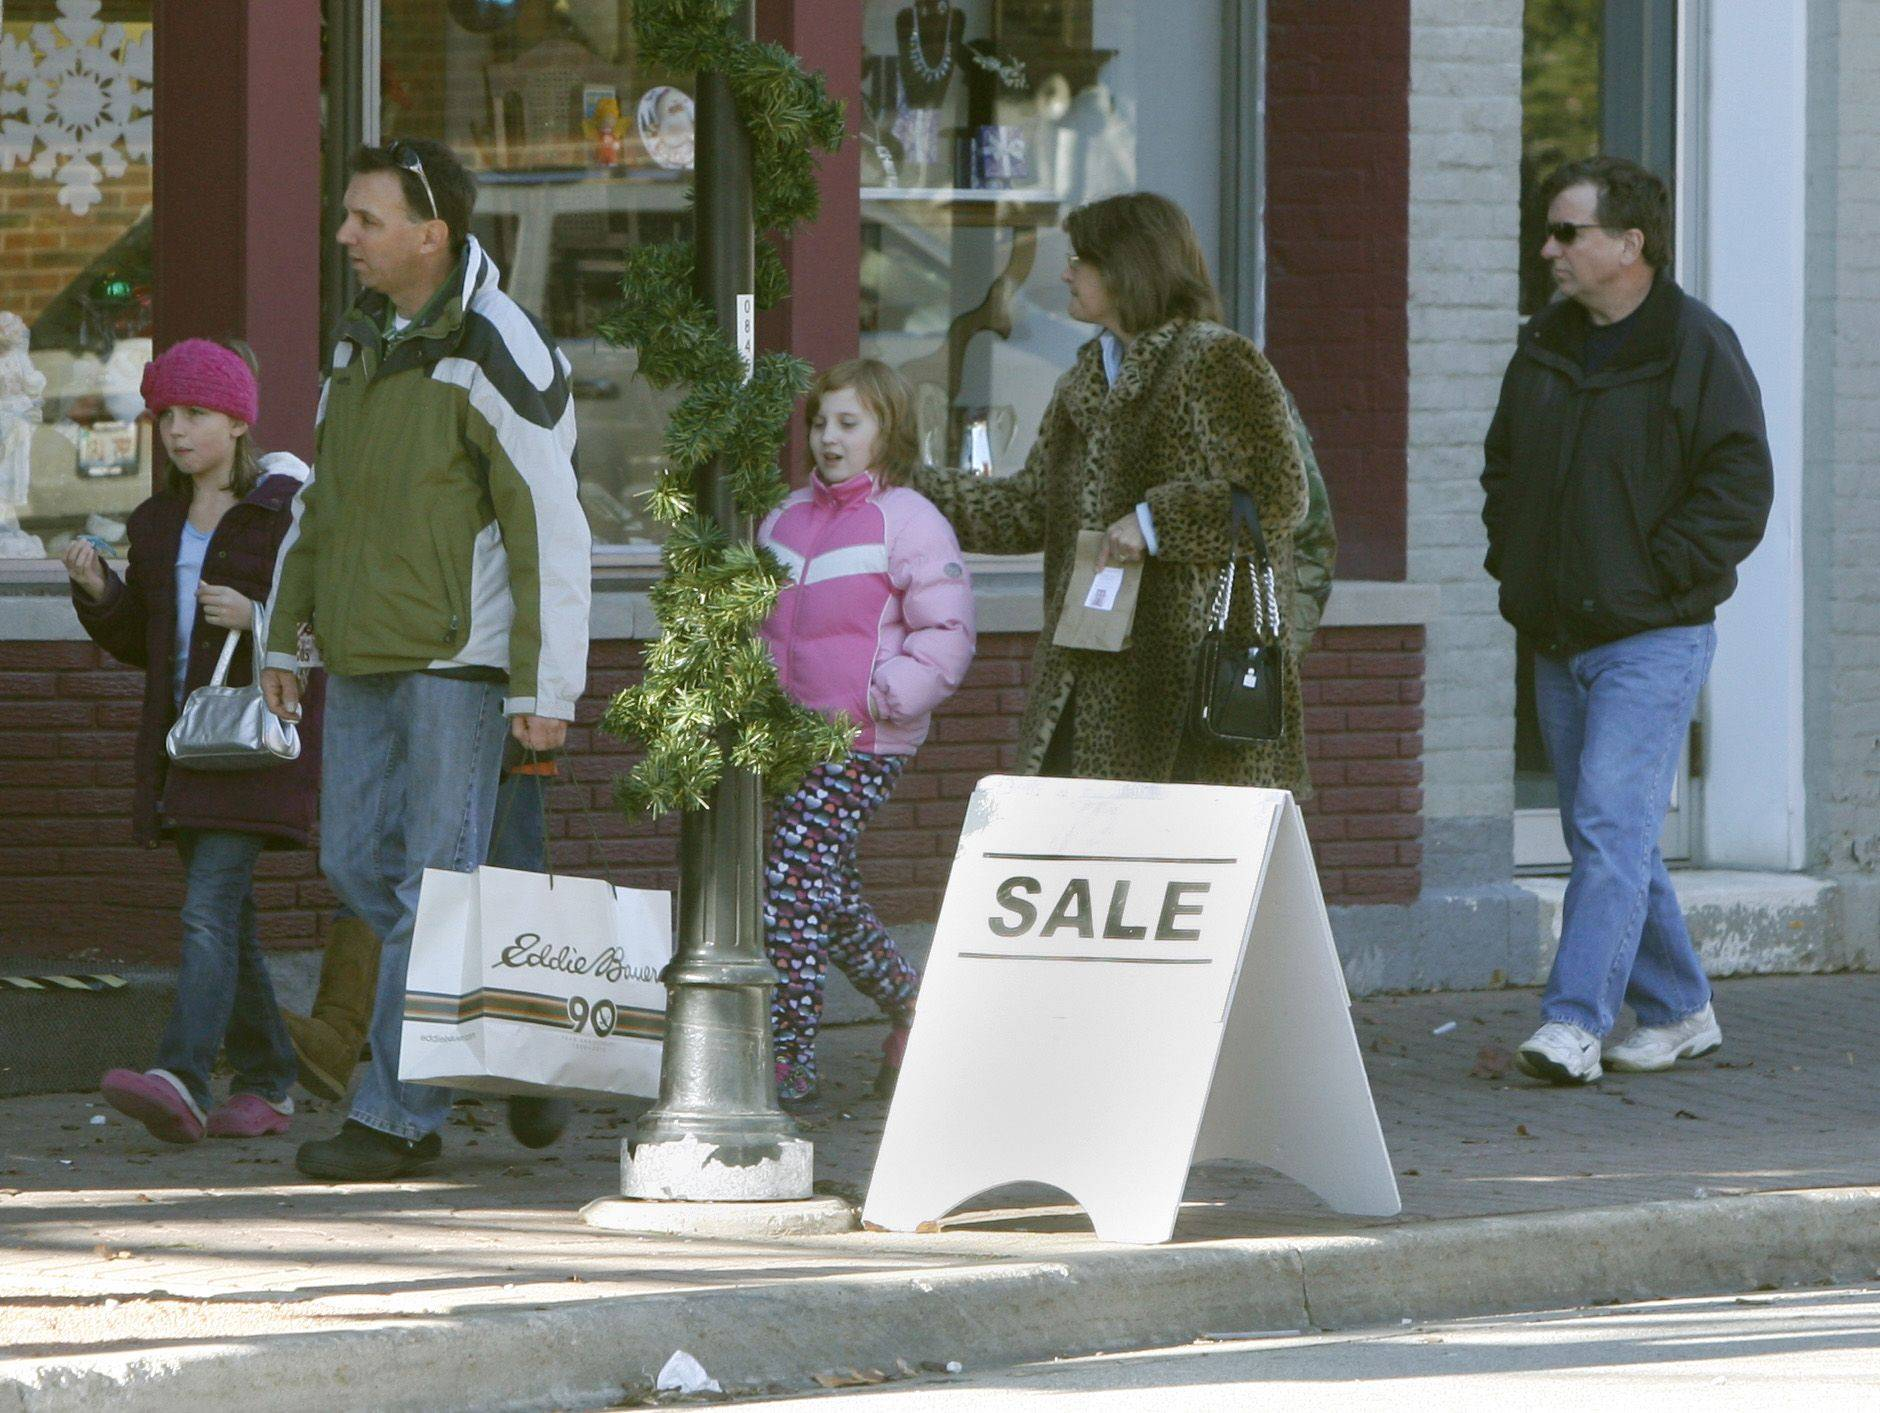 DANIEL WHITE/dwhite@dailyherald.com Shoppers make their way through the downtown intersection of Washington and Jefferson streets in Naperville Friday.